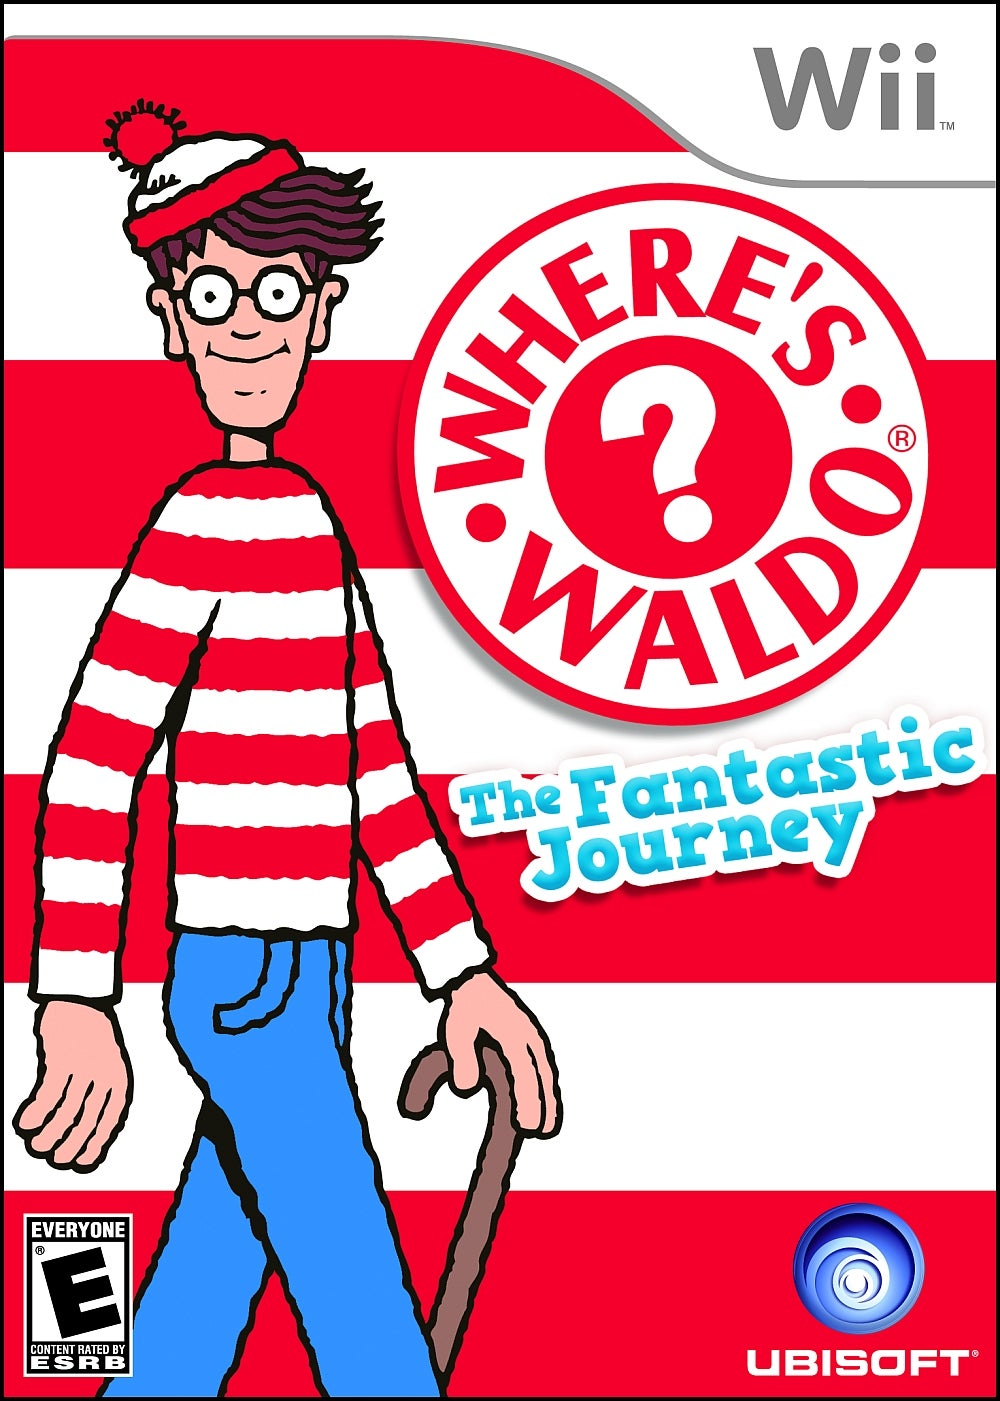 Wheres Waldo The Fantastic Journey Wii IGN